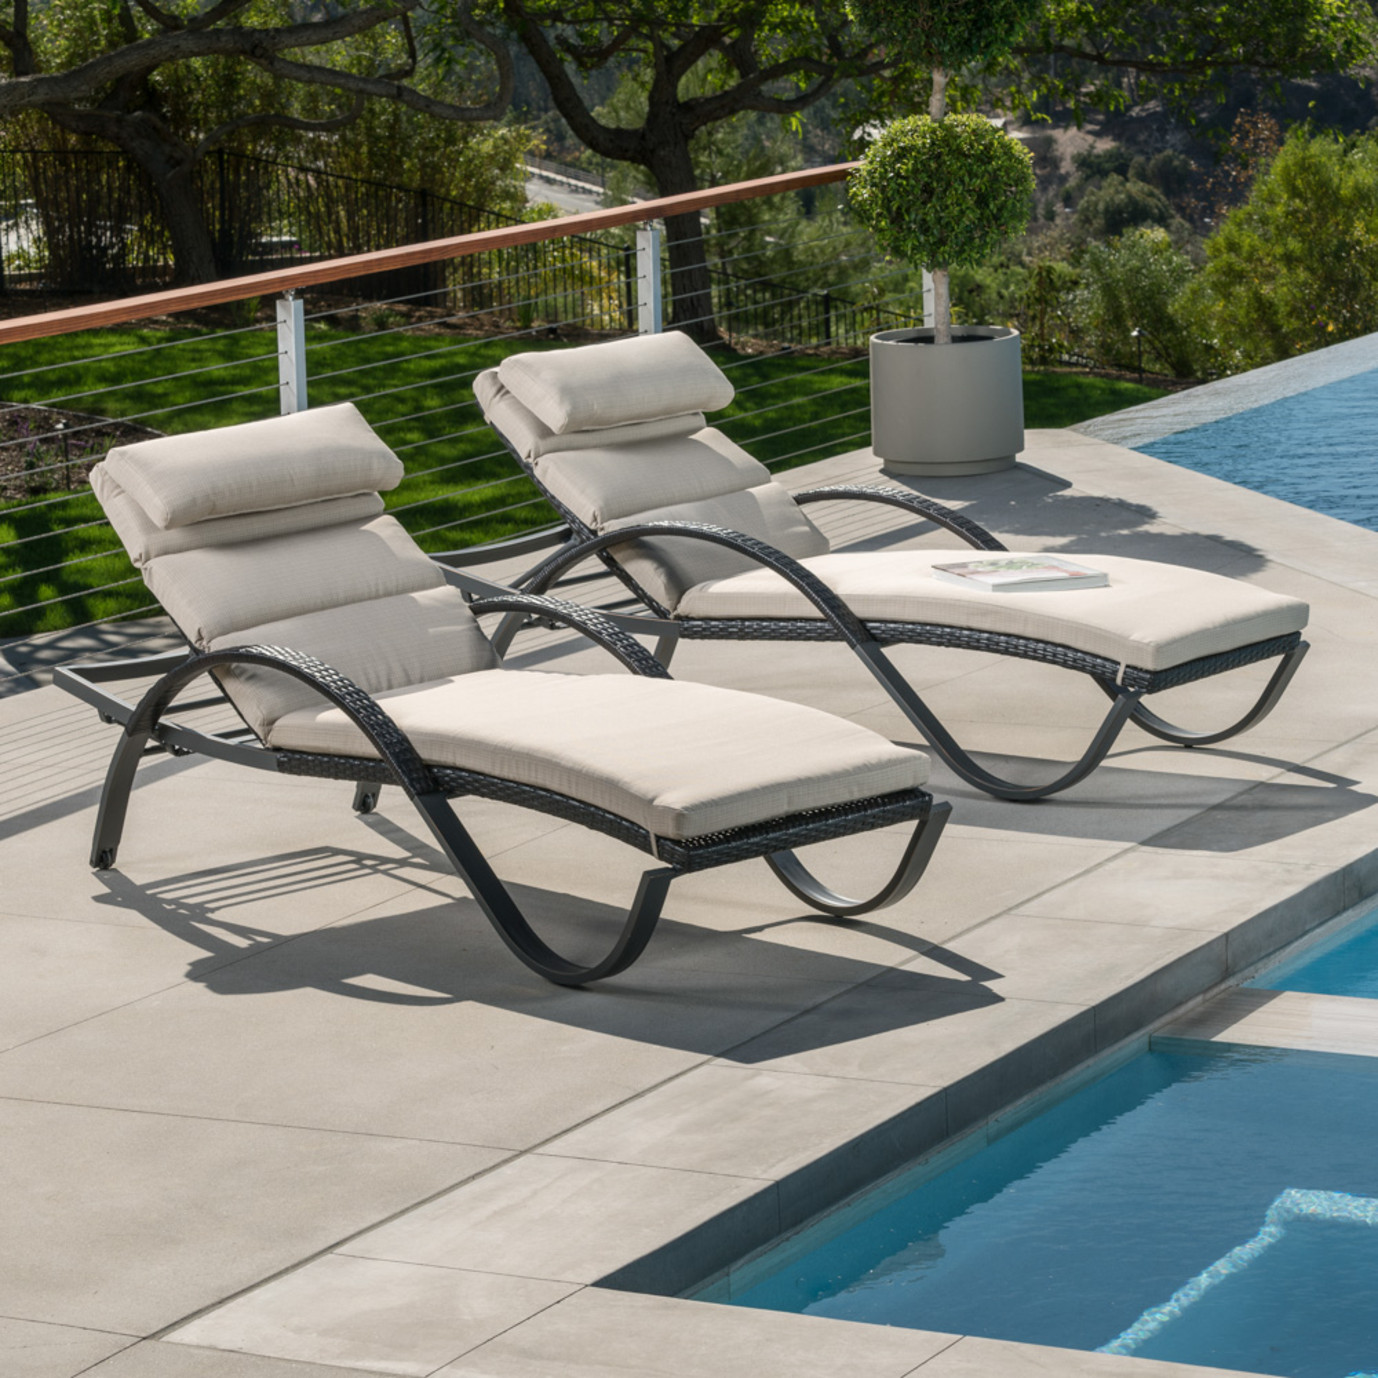 Deco™ Chaise Lounges with Cushions - Slate Gray